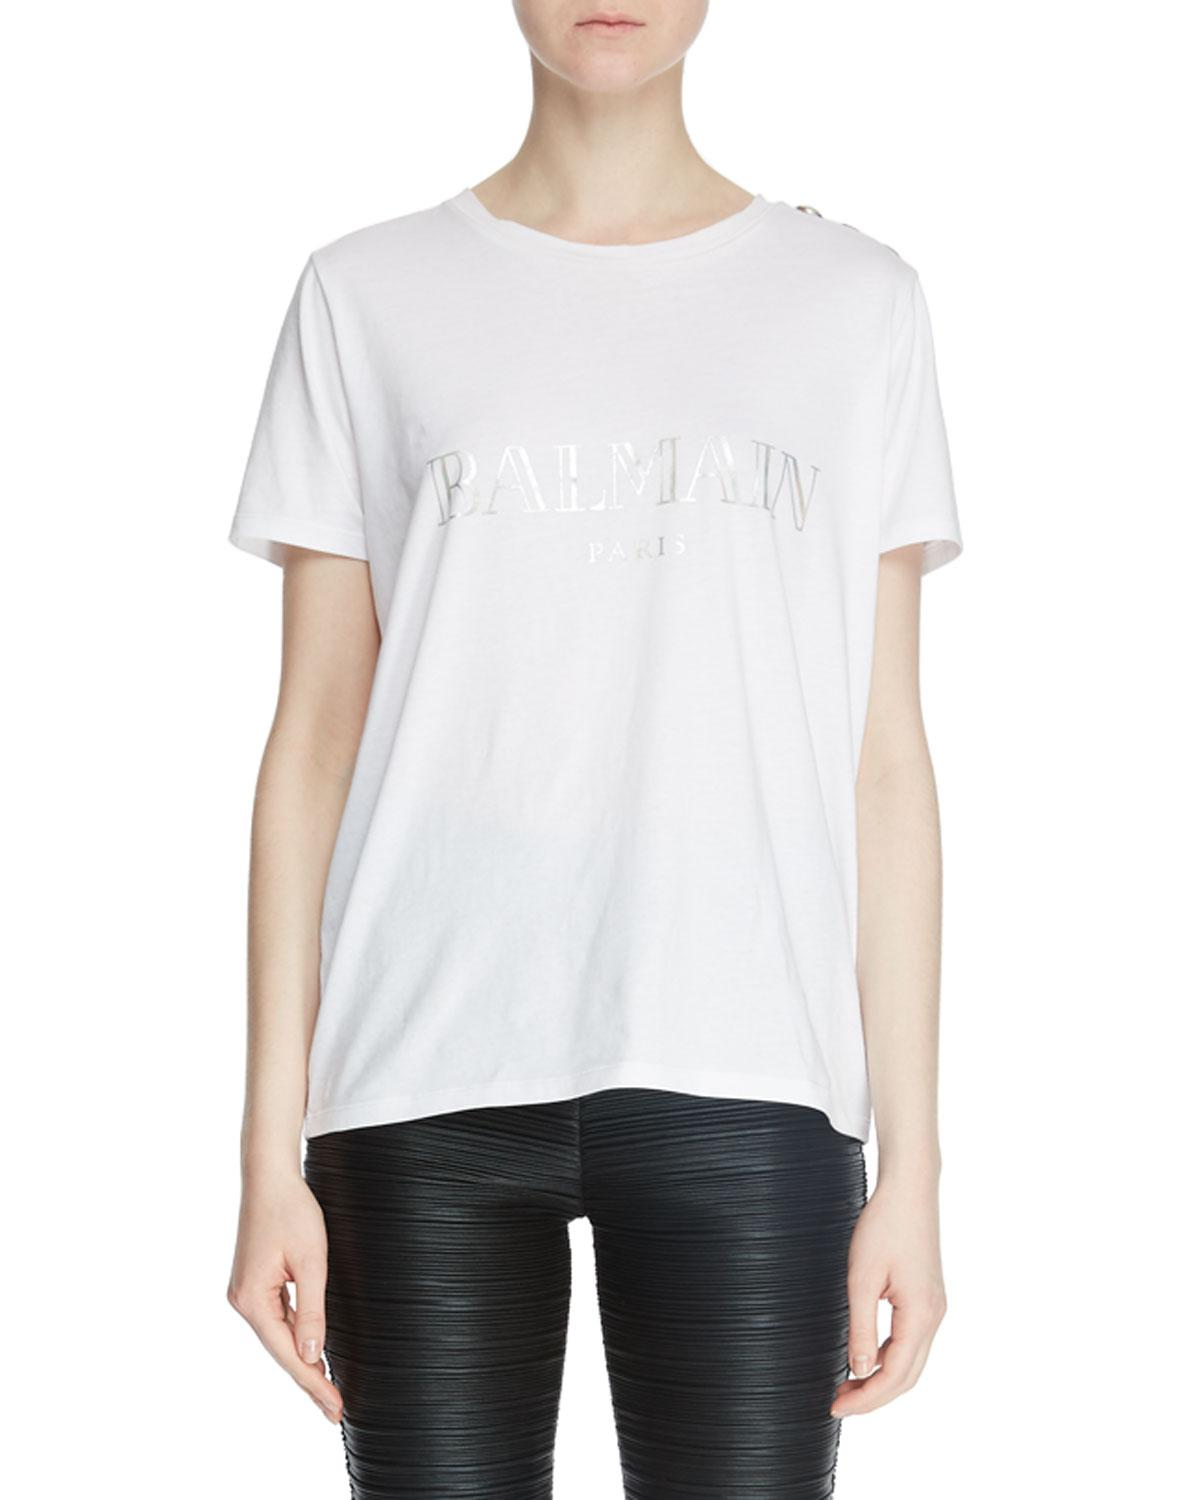 706d316a Lyst - Balmain Logo Crewneck Short-sleeve Cotton Tee in Black